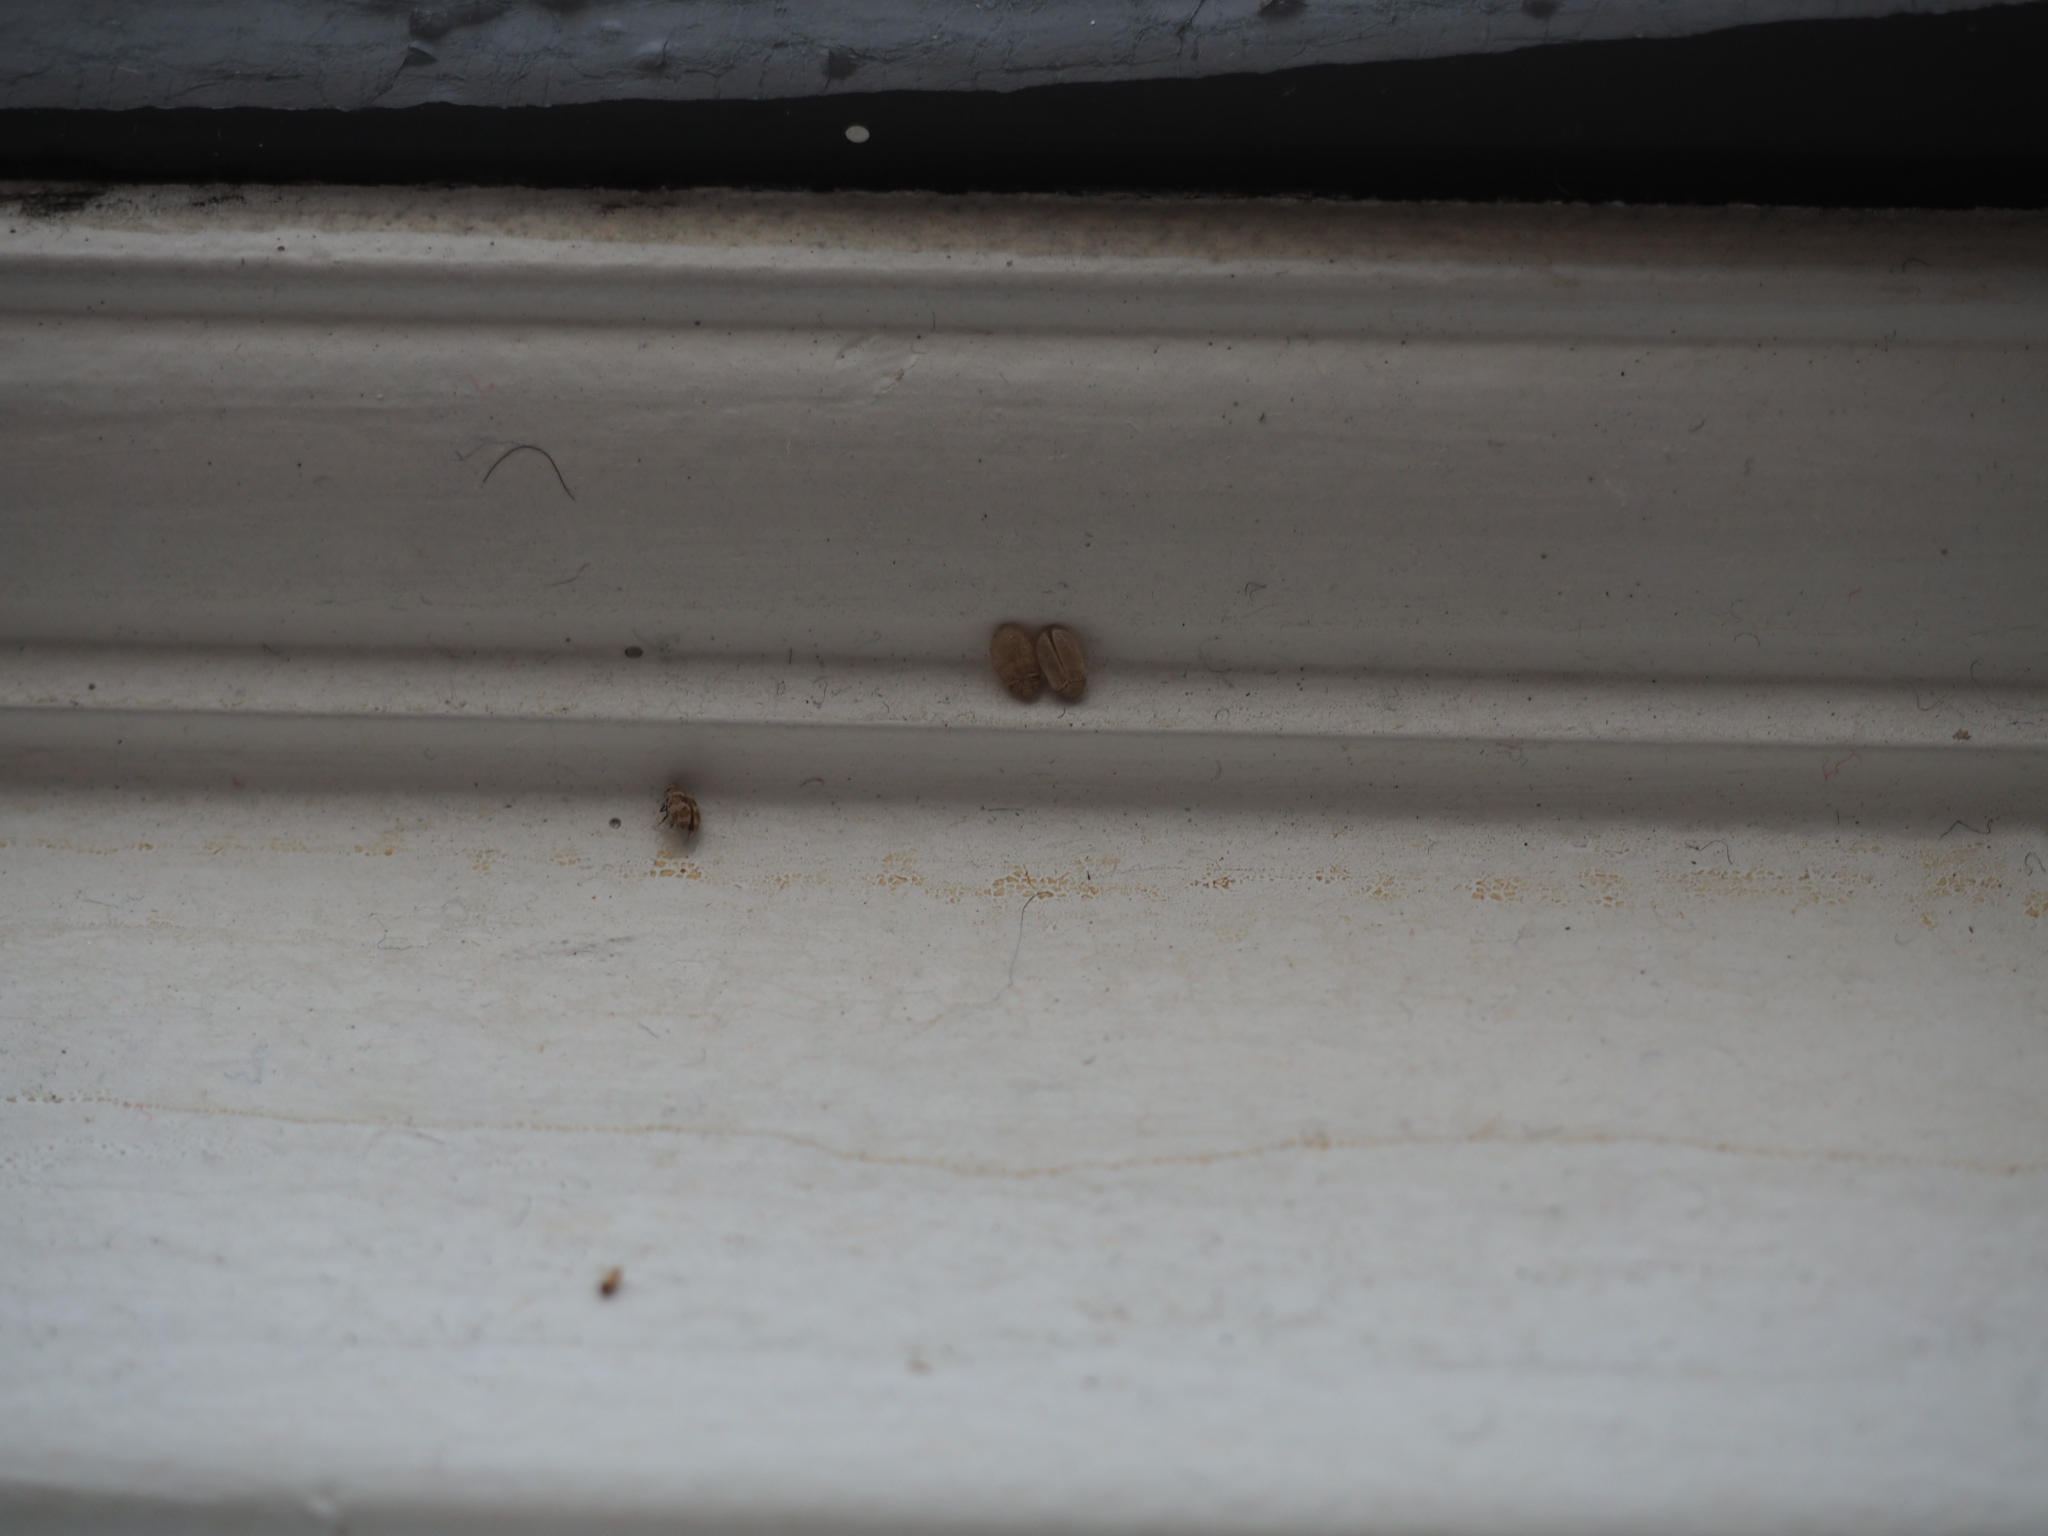 Skin And Body Of Small Bugs On Window Sills Floor Windows